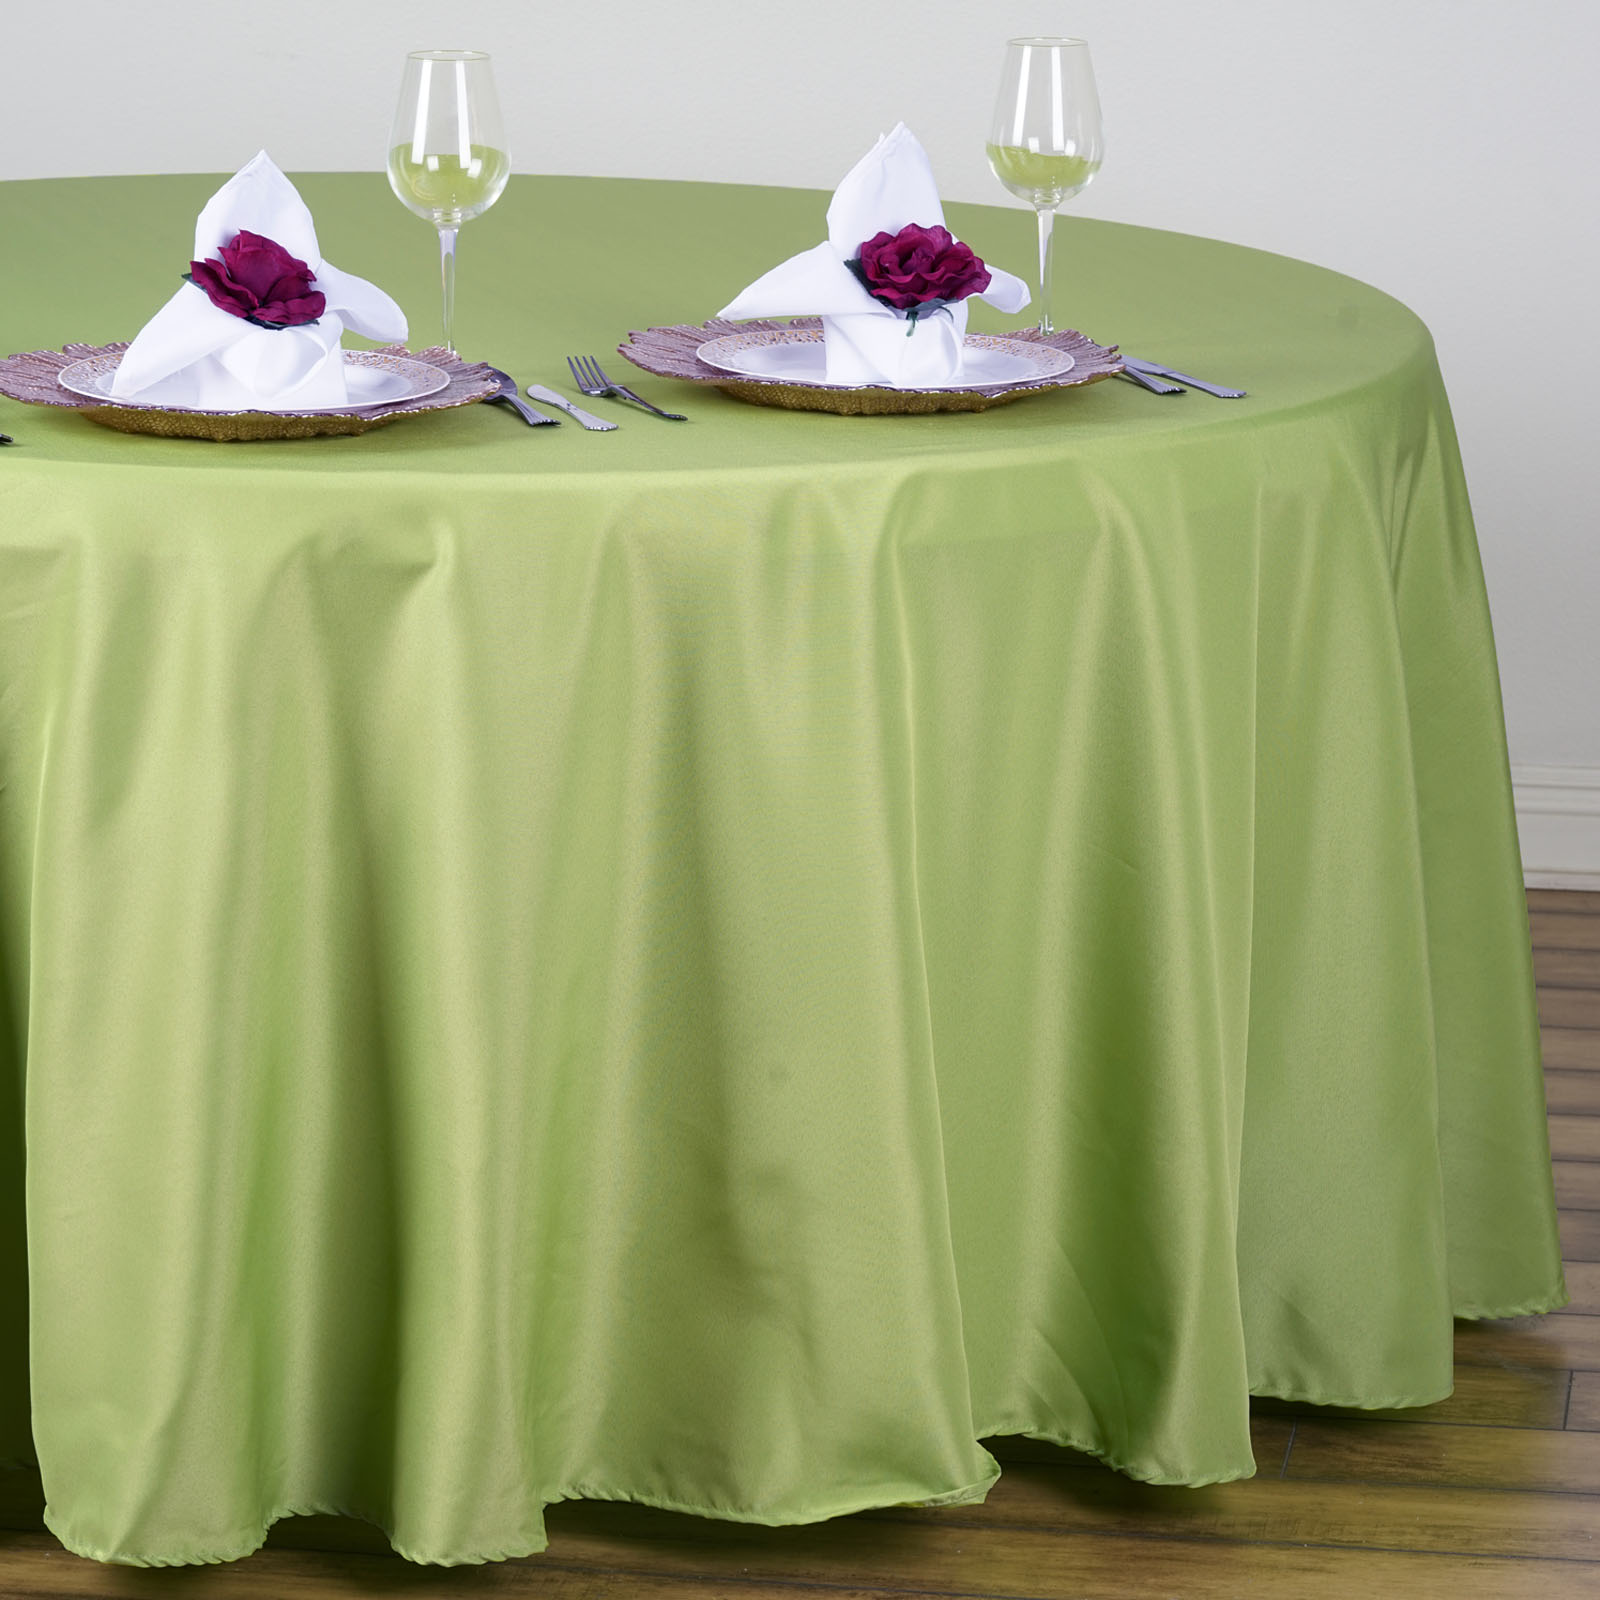 Polyester Round Tablecloth Decoration Supplies Dinner